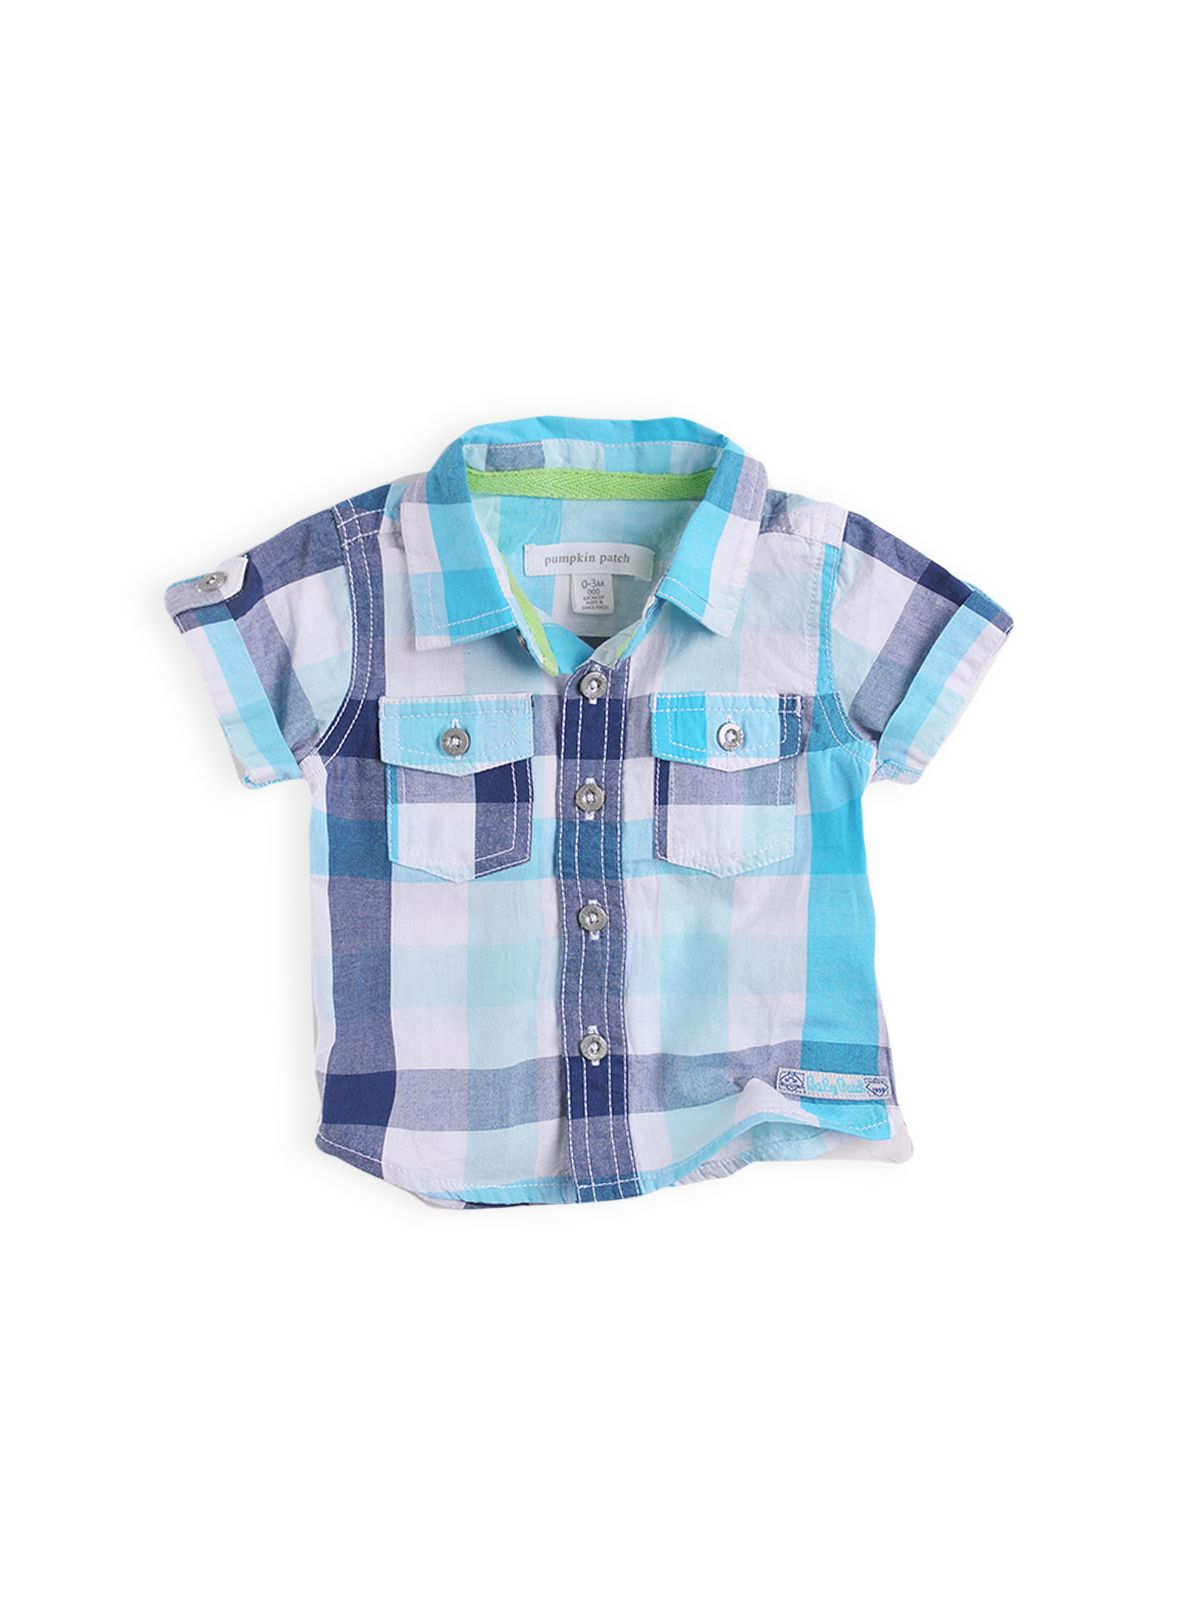 Boys short sleeve cotton shirt